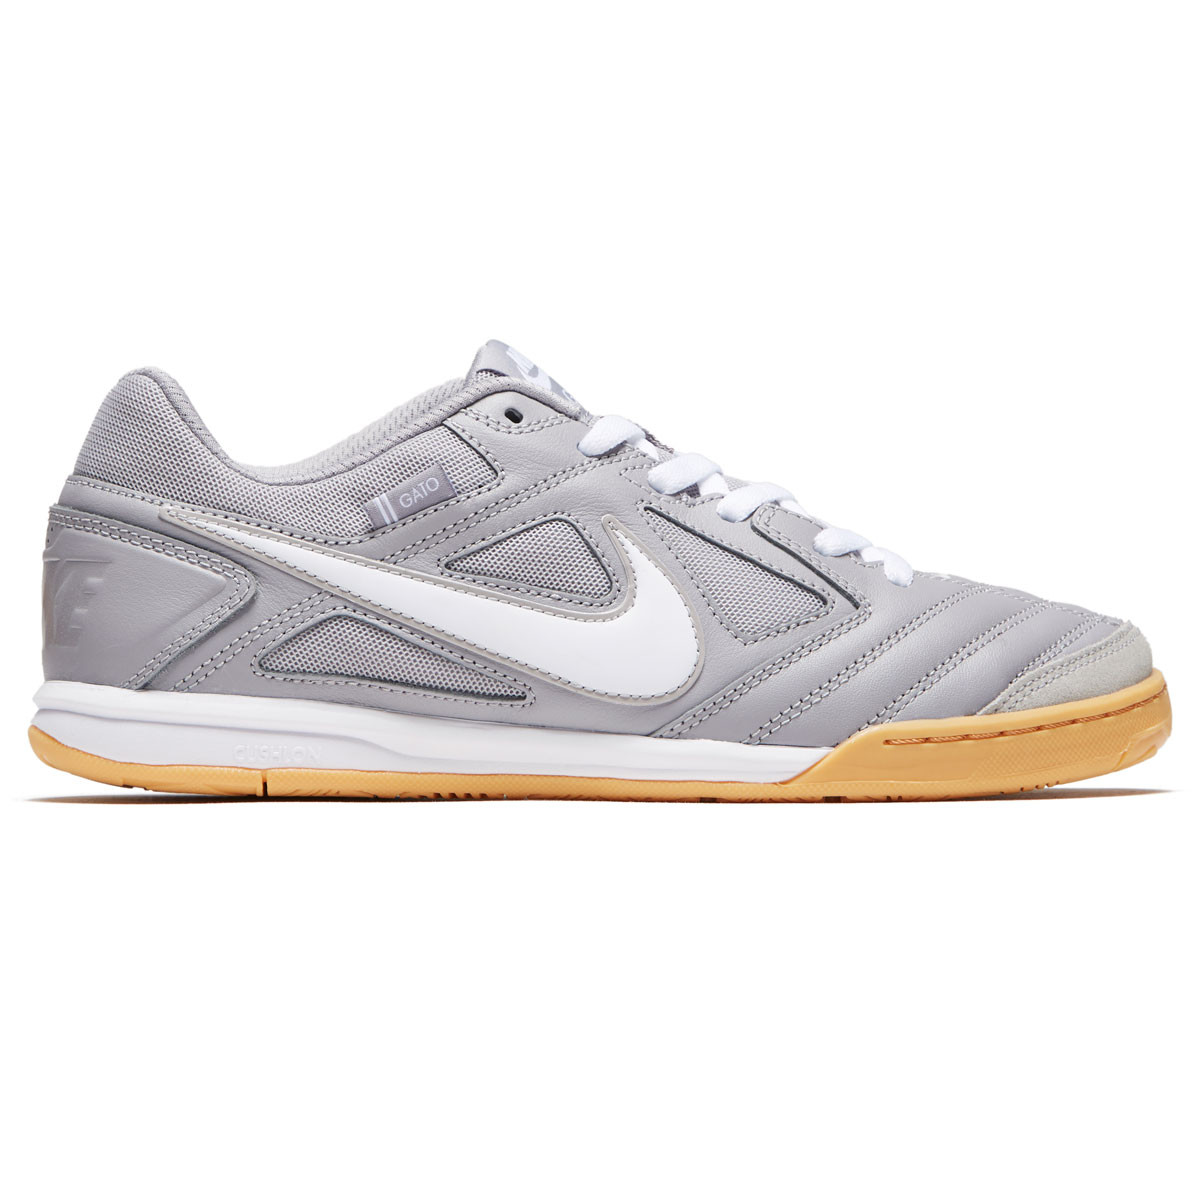 81a01fc65e Nike SB Gato Shoes - Atmosphere Grey White Atmosphere Grey - 6.0